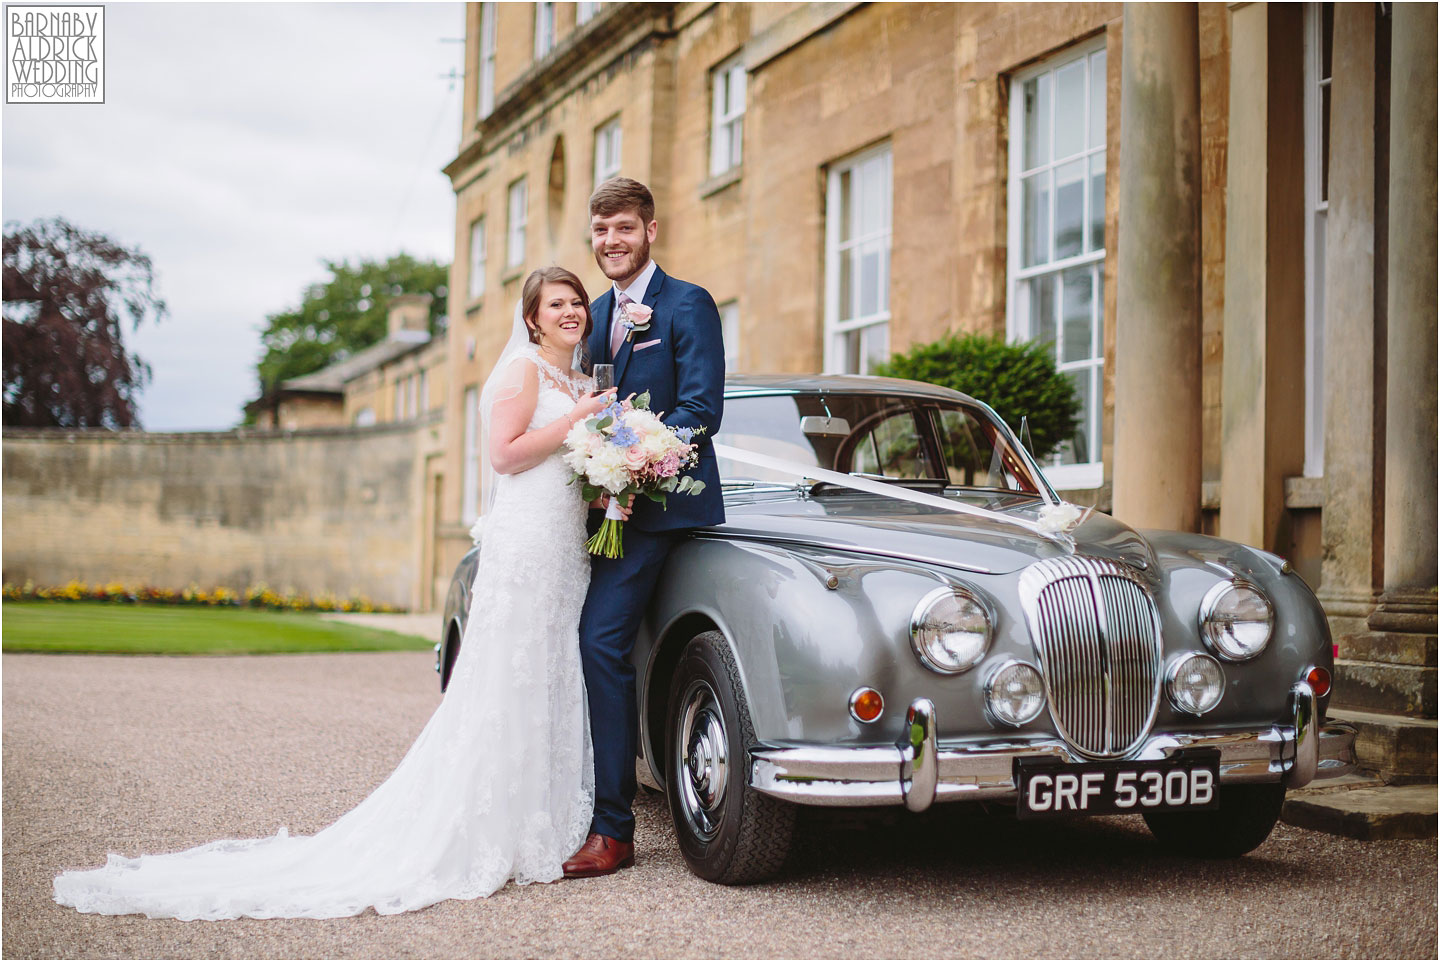 Bowcliffe Hall Bramham Wedding Photography, Bramham Wedding Photographer, Exclusive Leeds Wedding Venues